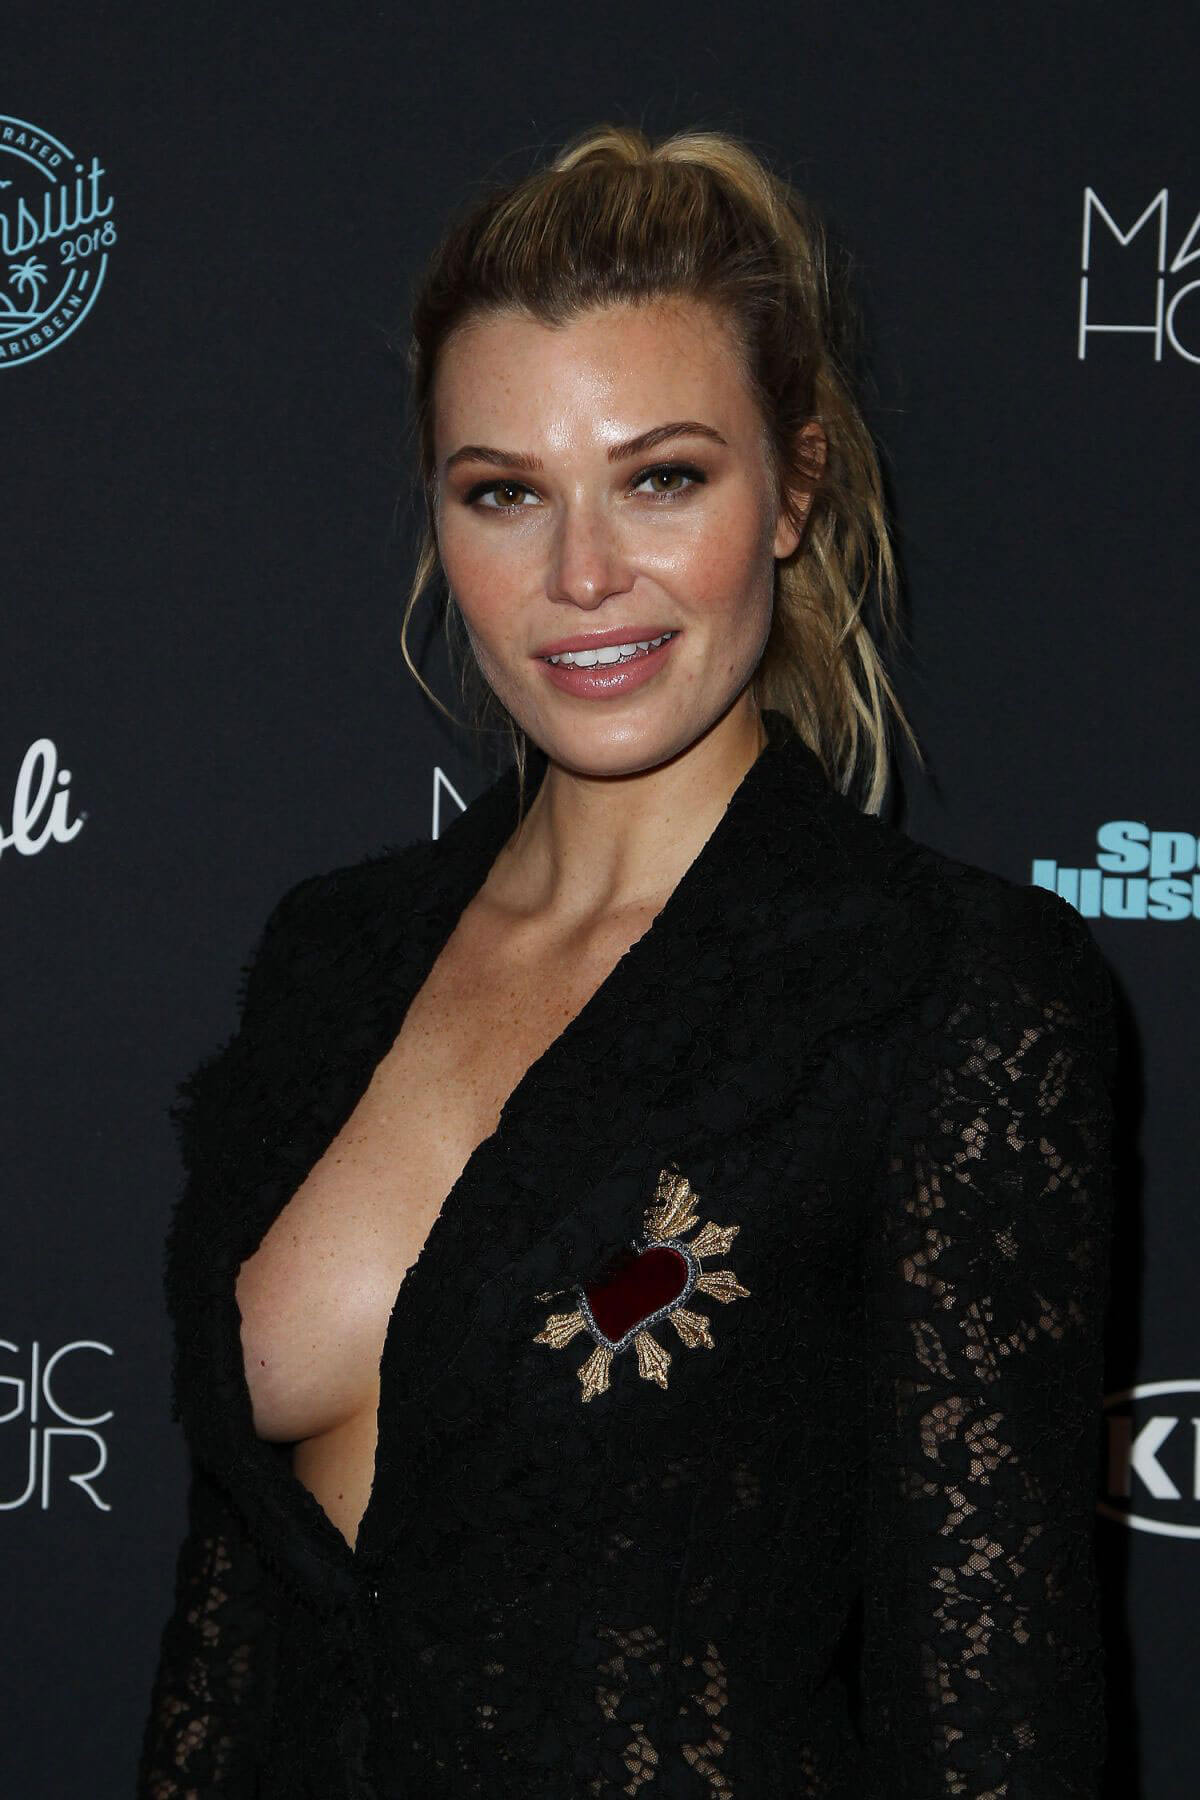 Samantha Hoopes Stills at Sports Illustrated Swimsuit Issue 2018 Launch in New York 2018/02/14